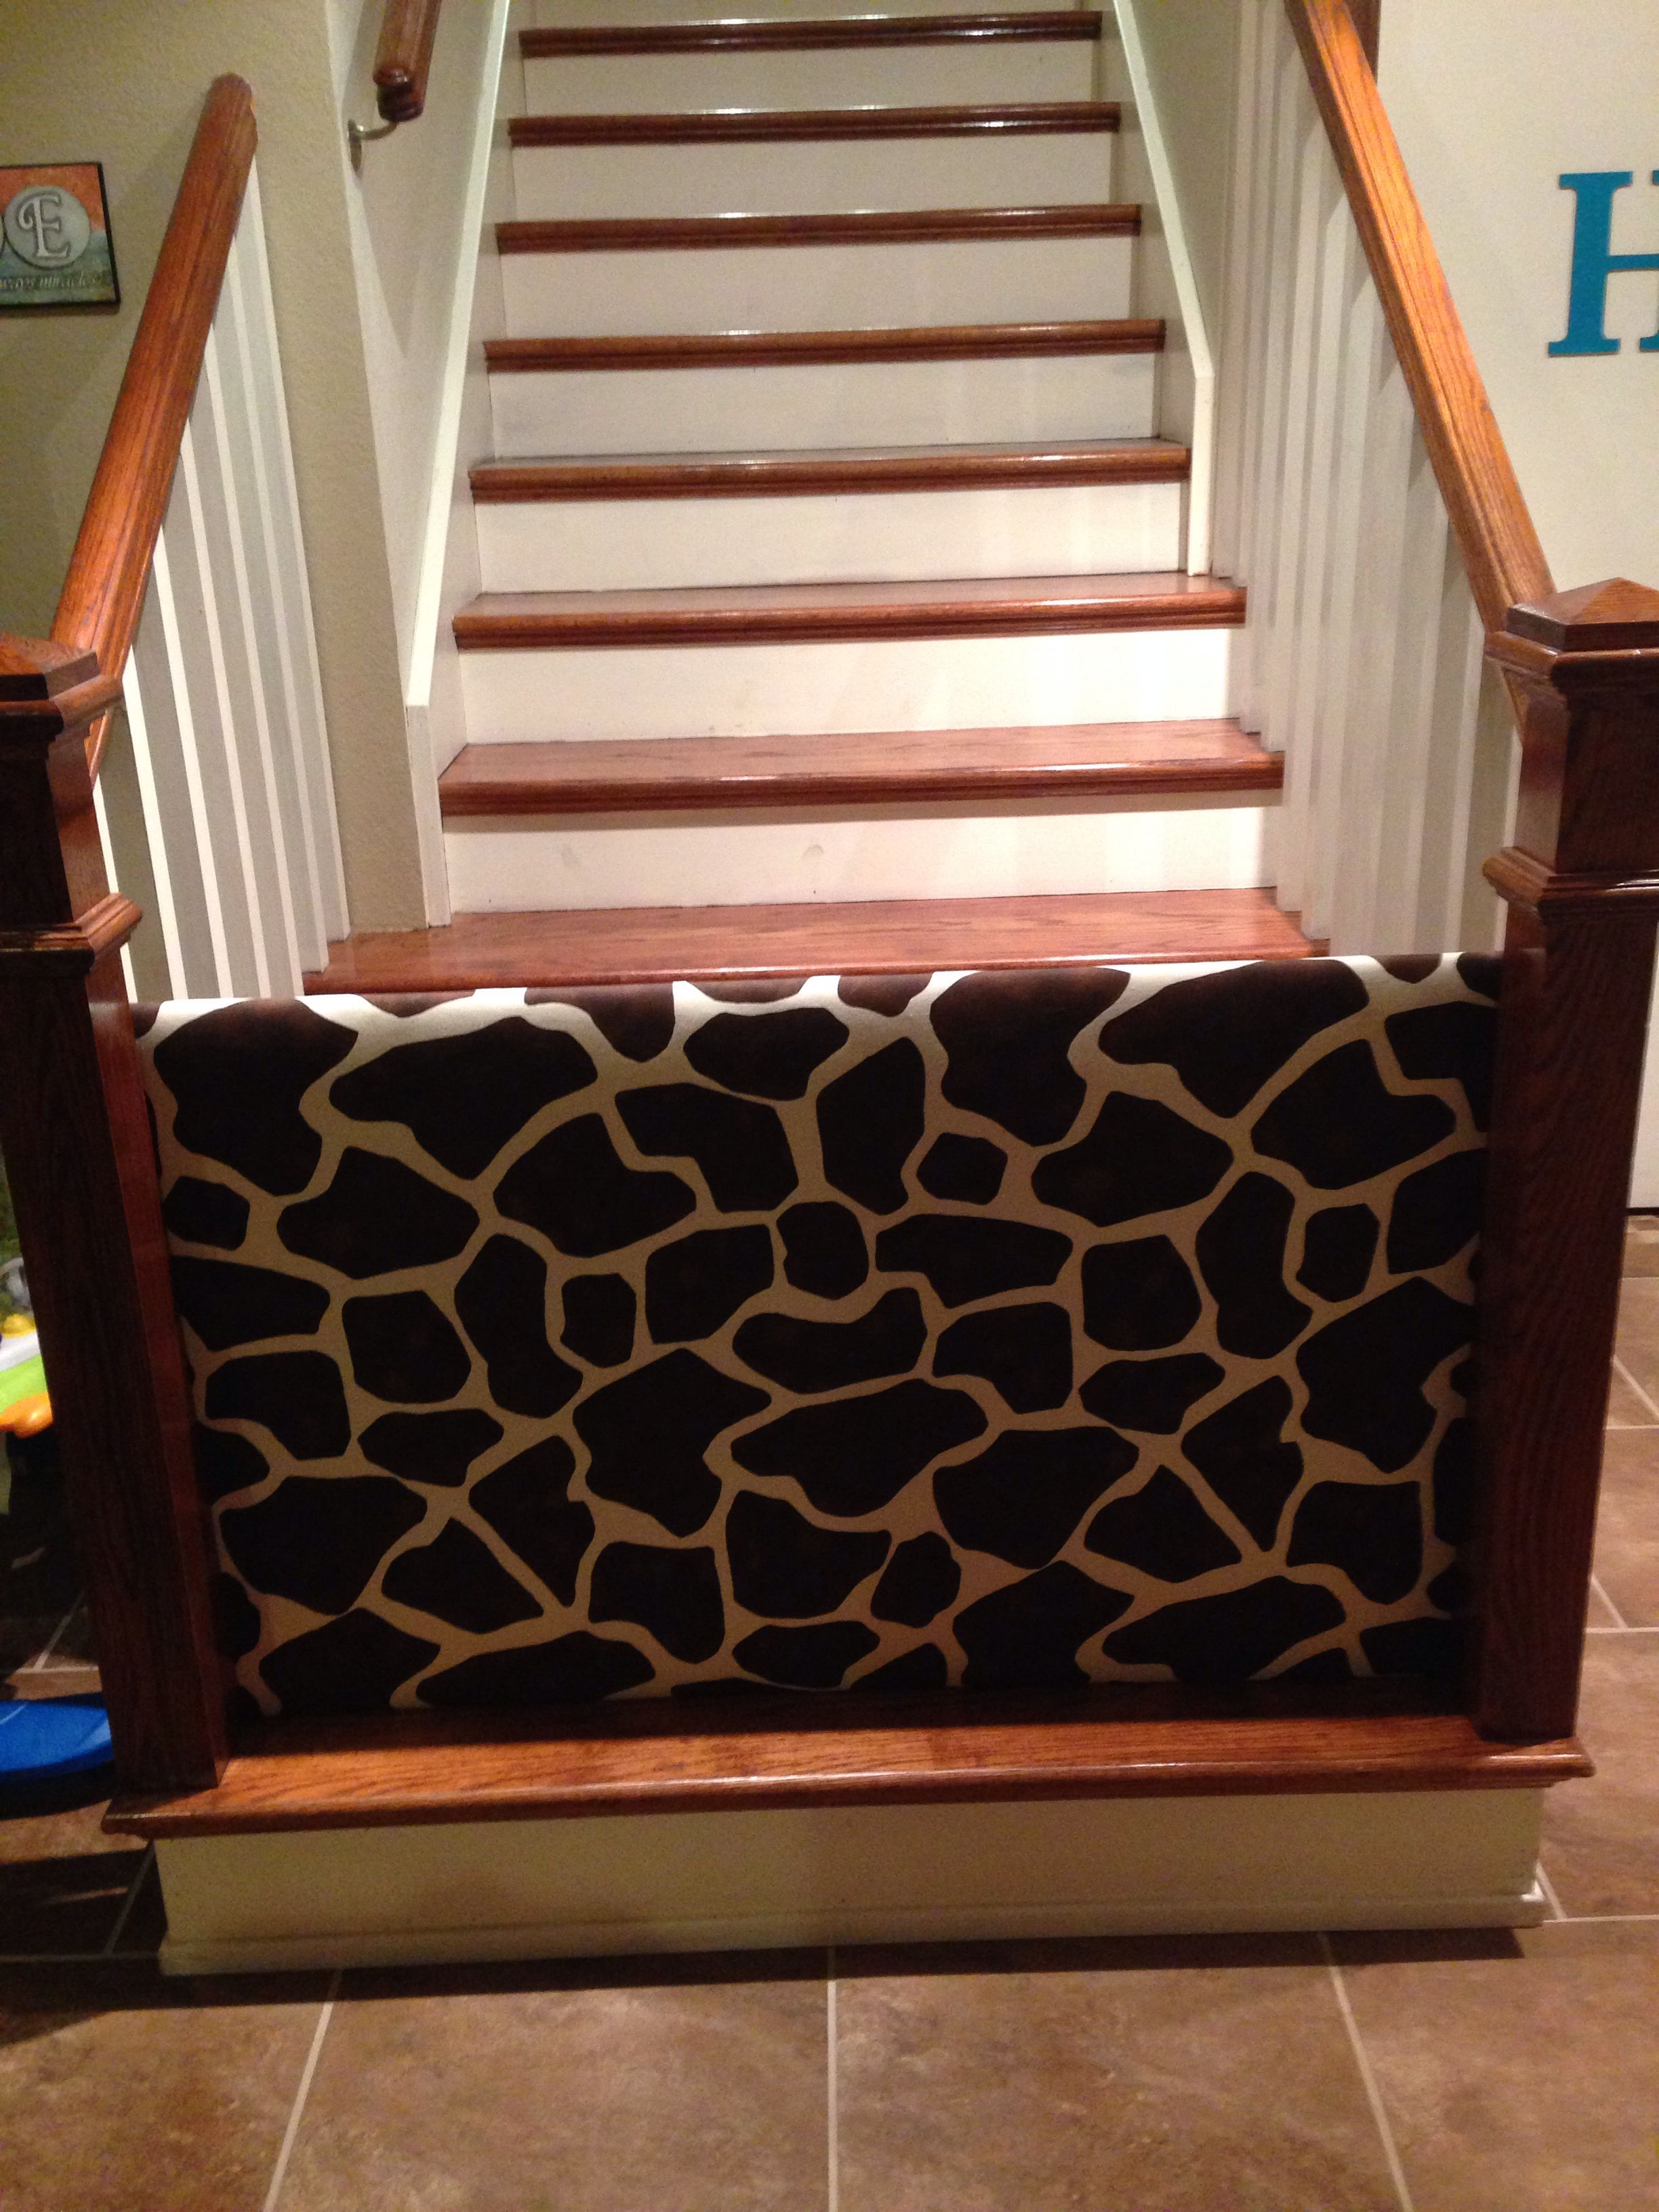 13 Diy Dog Gate Ideas: This Is Our Homemade Baby Gate :). We Never Found One In